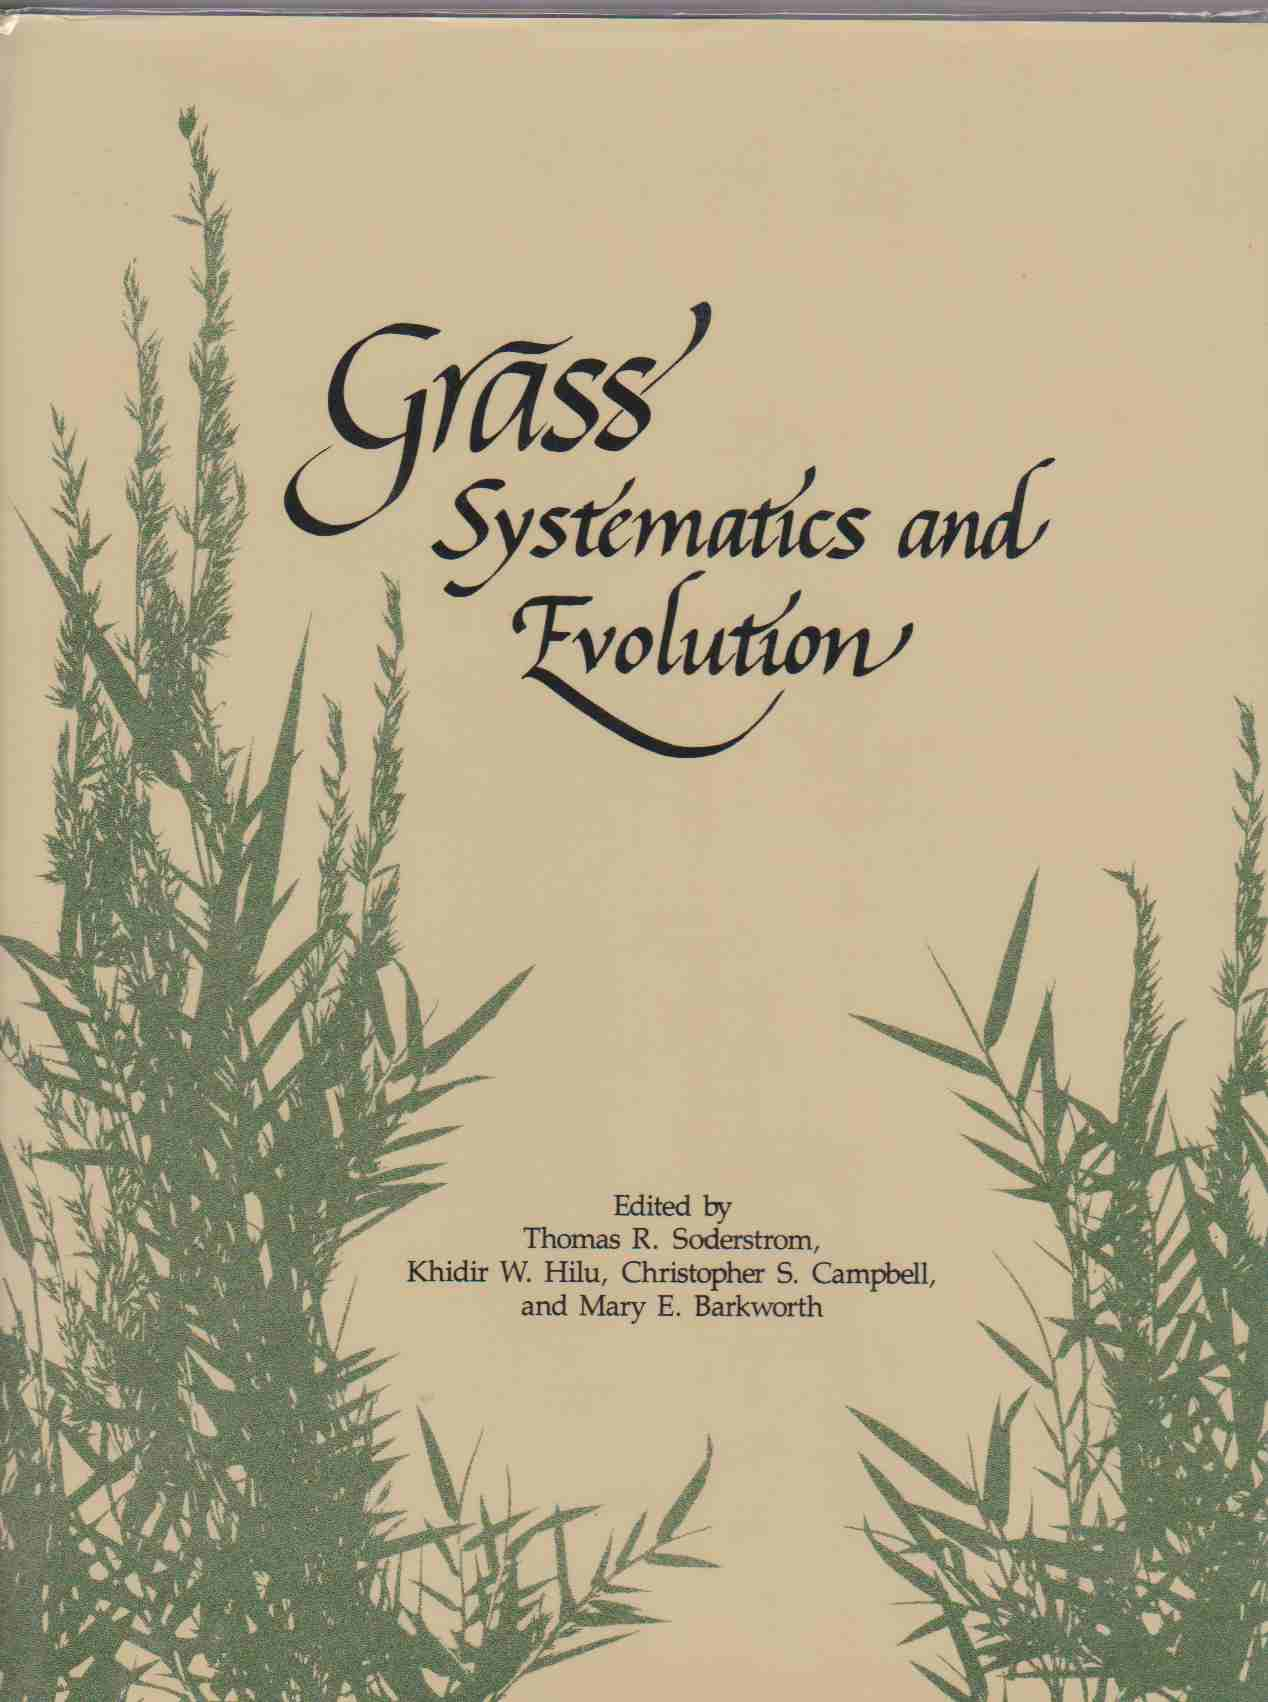 Image for GRASS Systematics and Evolution